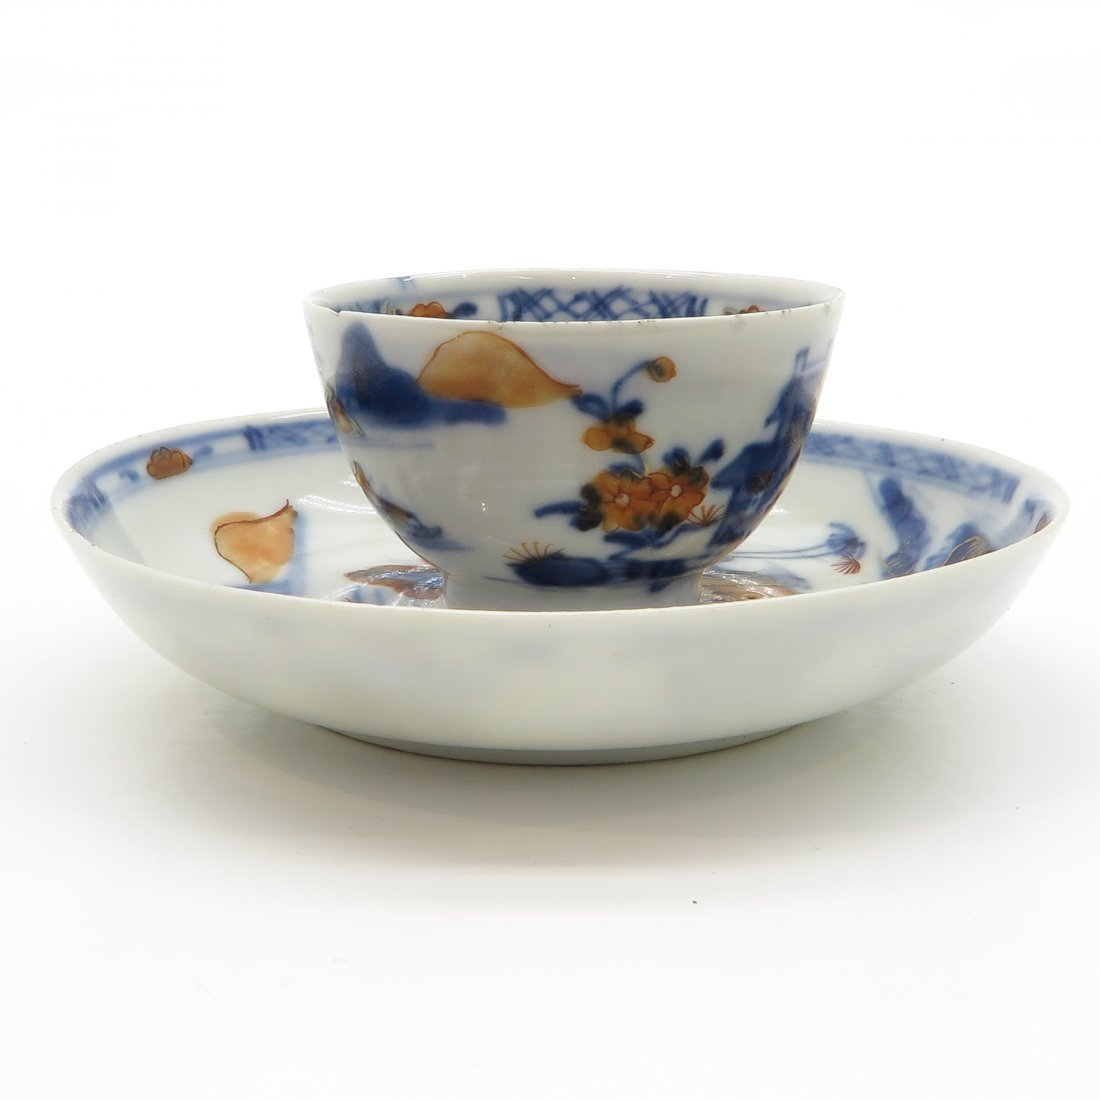 18th Century China Porcelain Cup and Saucer - 4